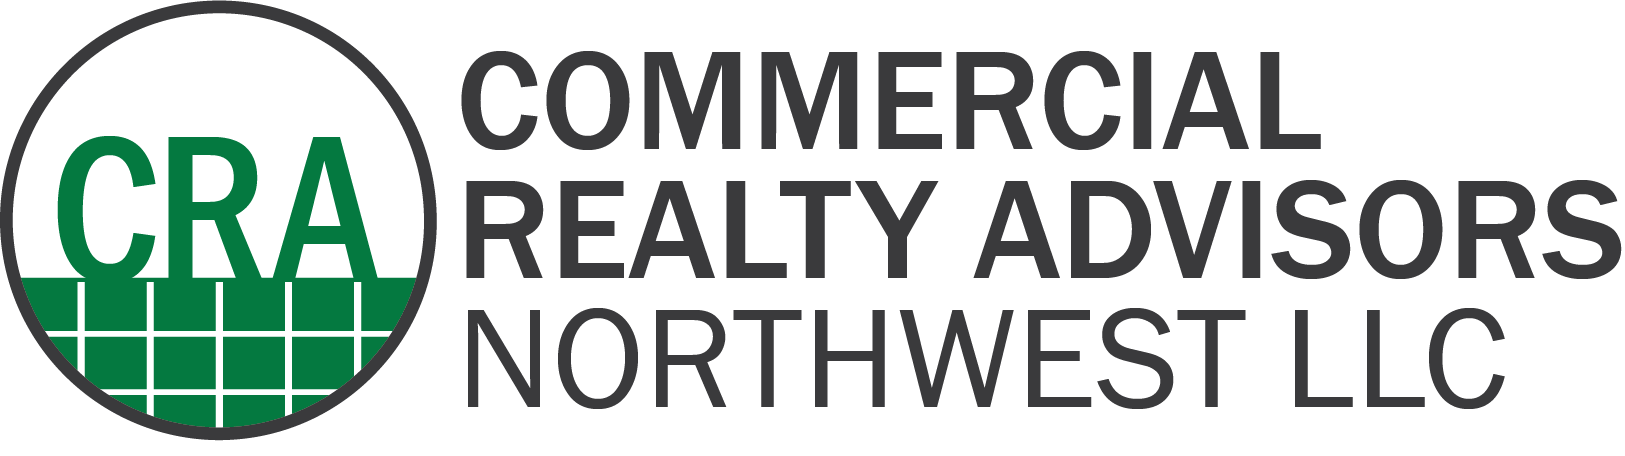 Commercial Realty Advisors Northwest LLC